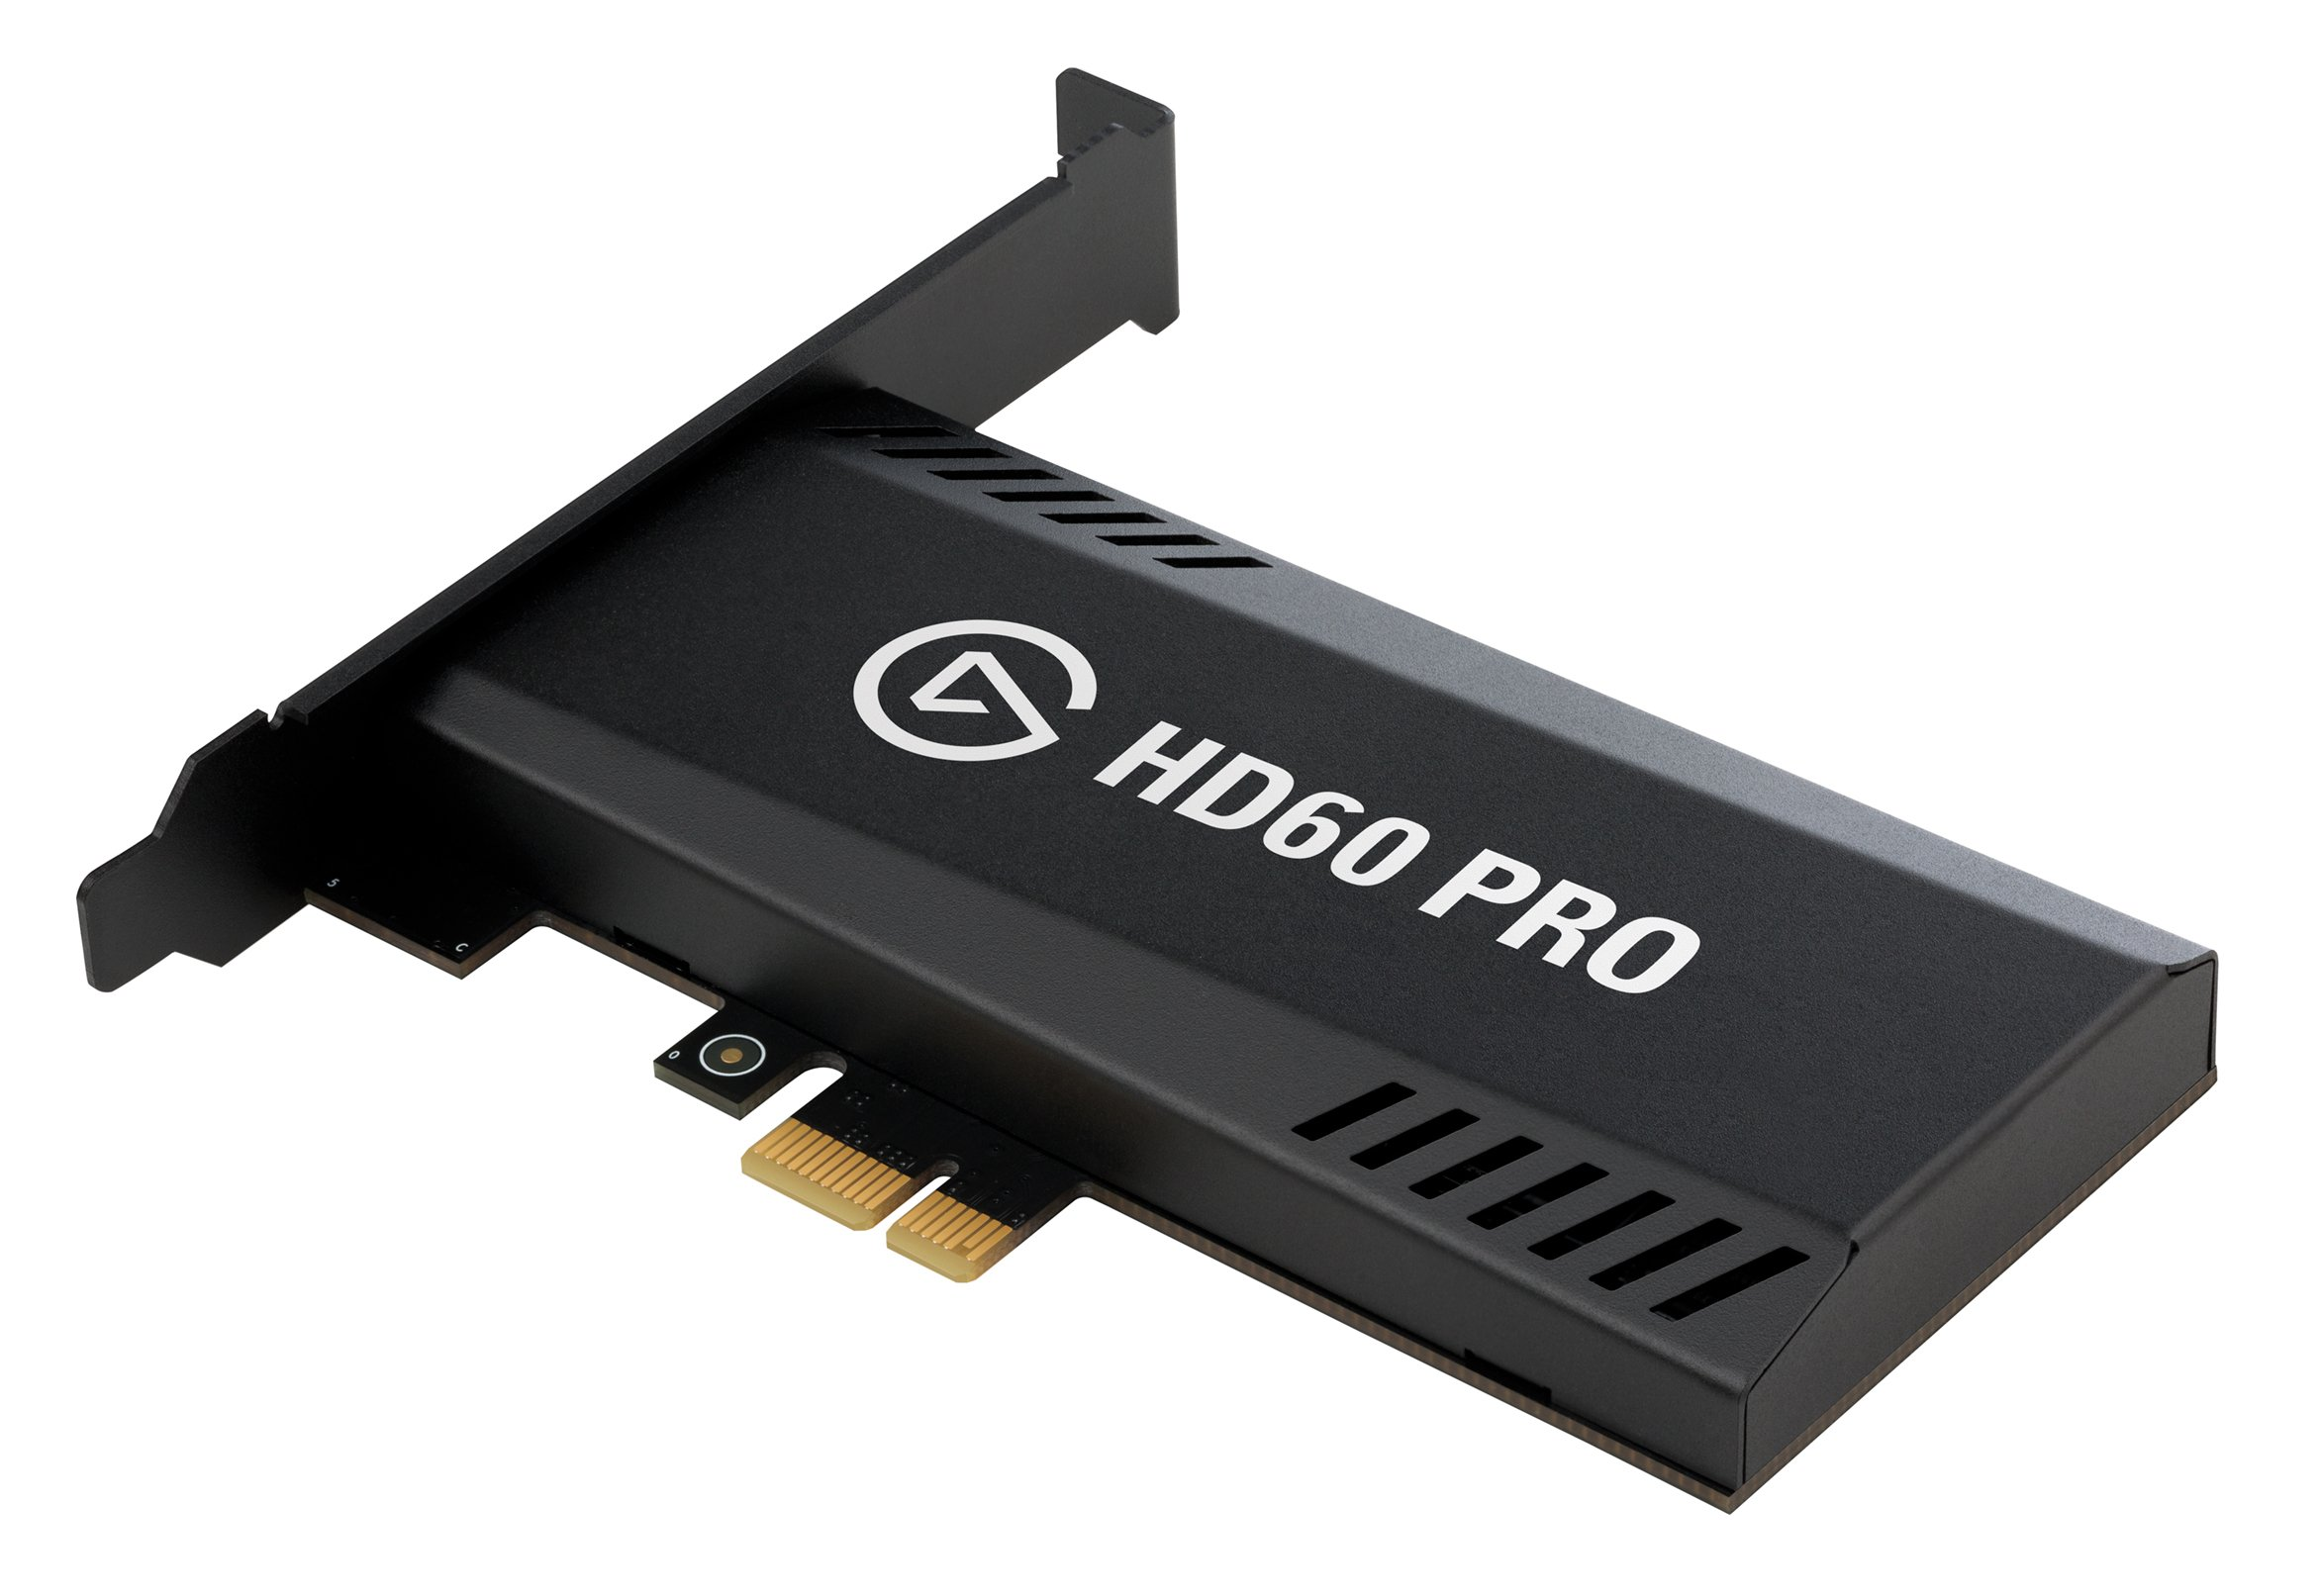 Elgato Game Capture HD60 Pro, stream and record in 1080p60, superior low latency technology, H.264 hardware encoding, PCIe